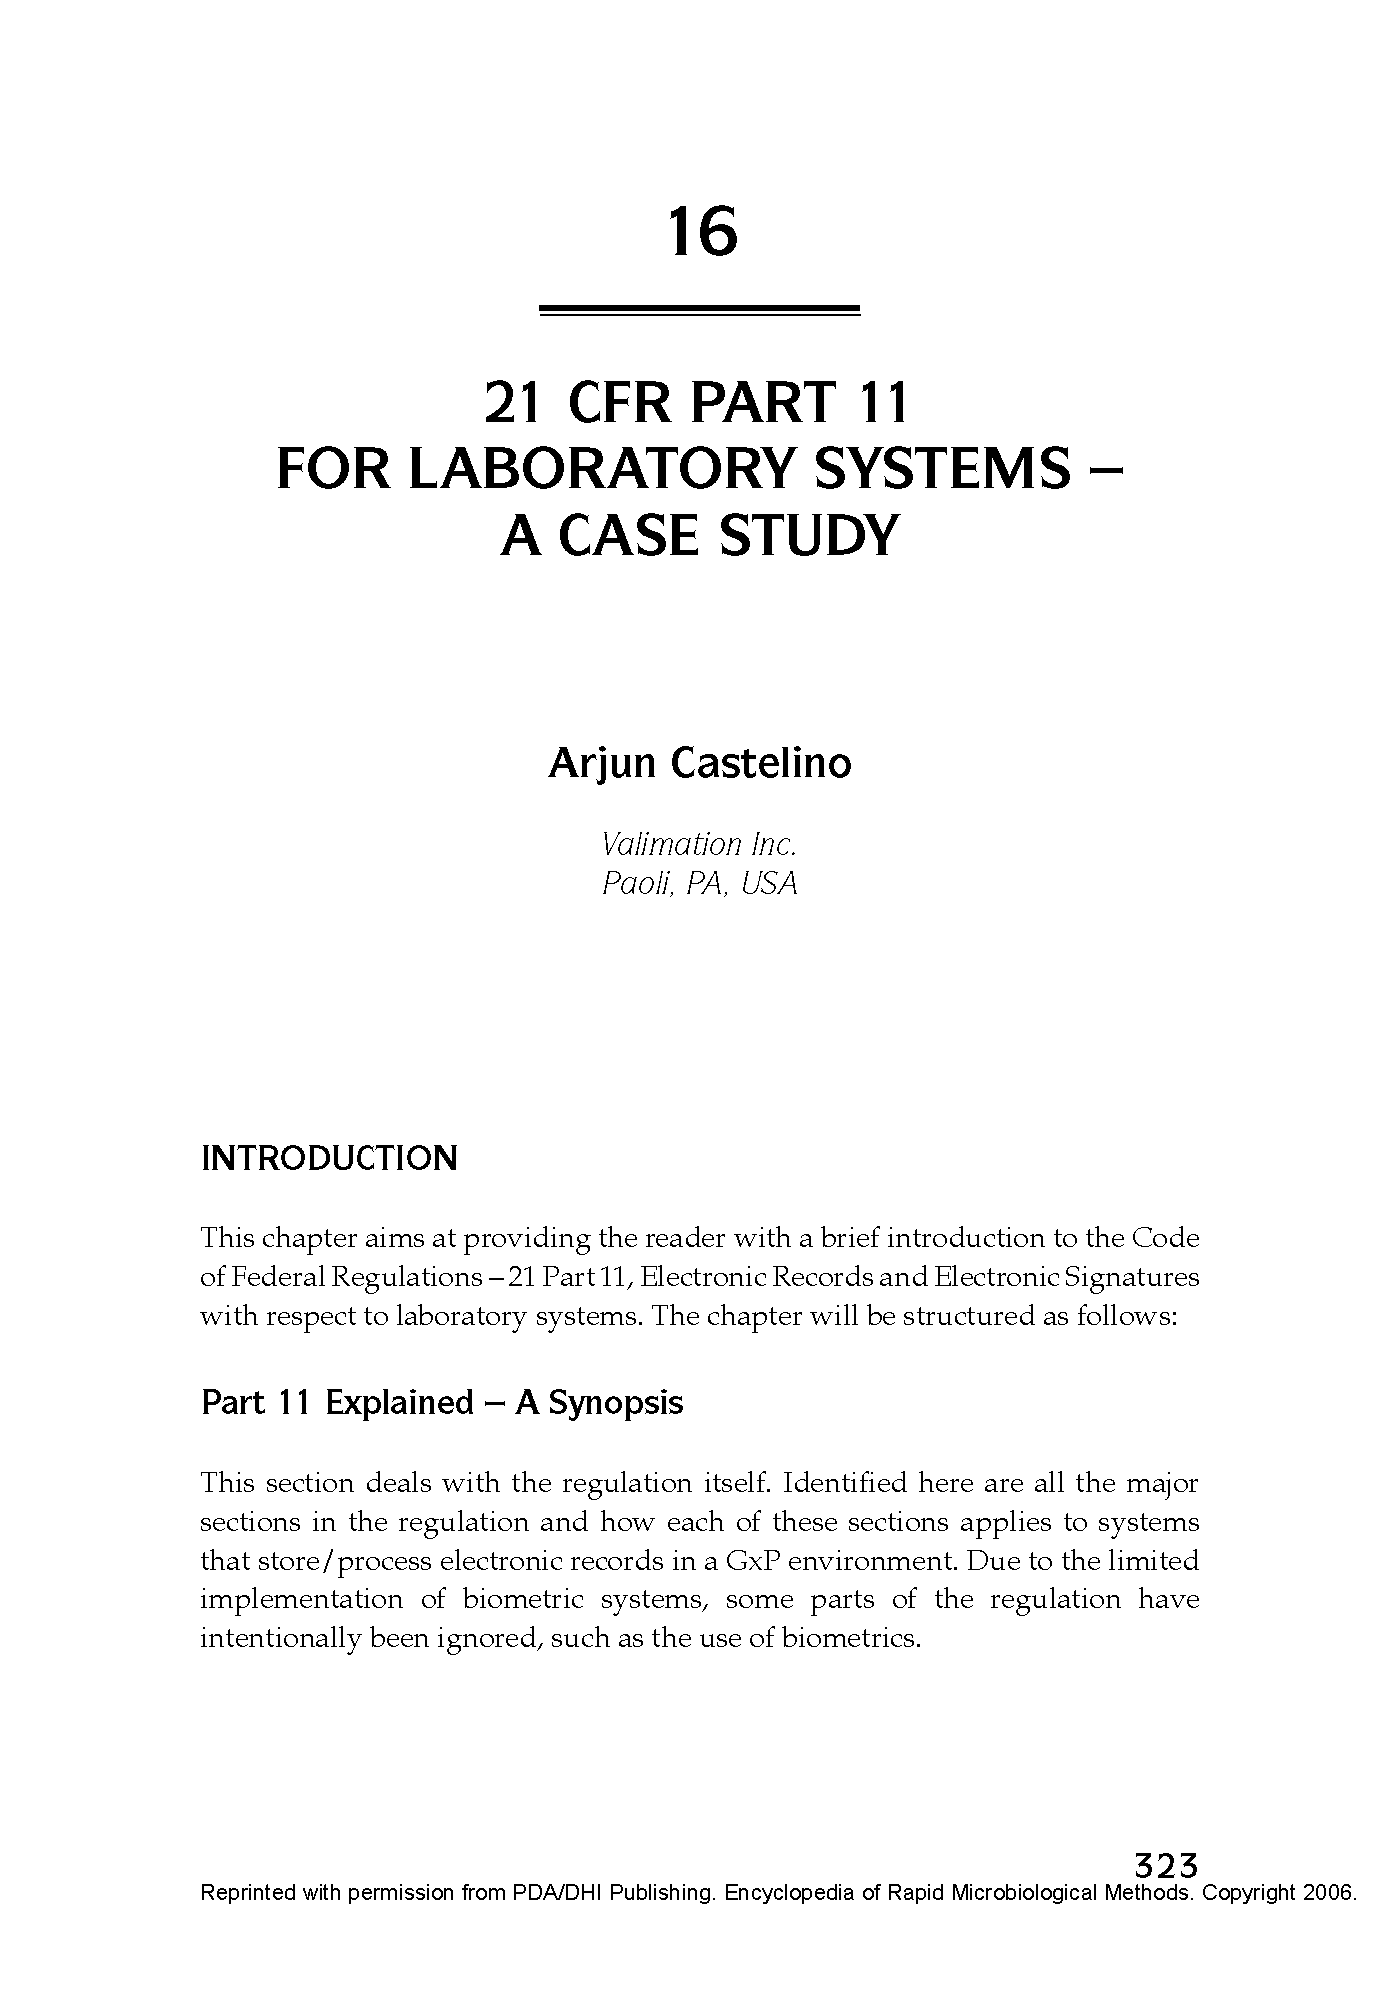 21 CFR Part 11 - Case Study Published in the Encyclopedia of Rapid Microbiological Methods - Volume 1, DHI Publishing_Page_01.png